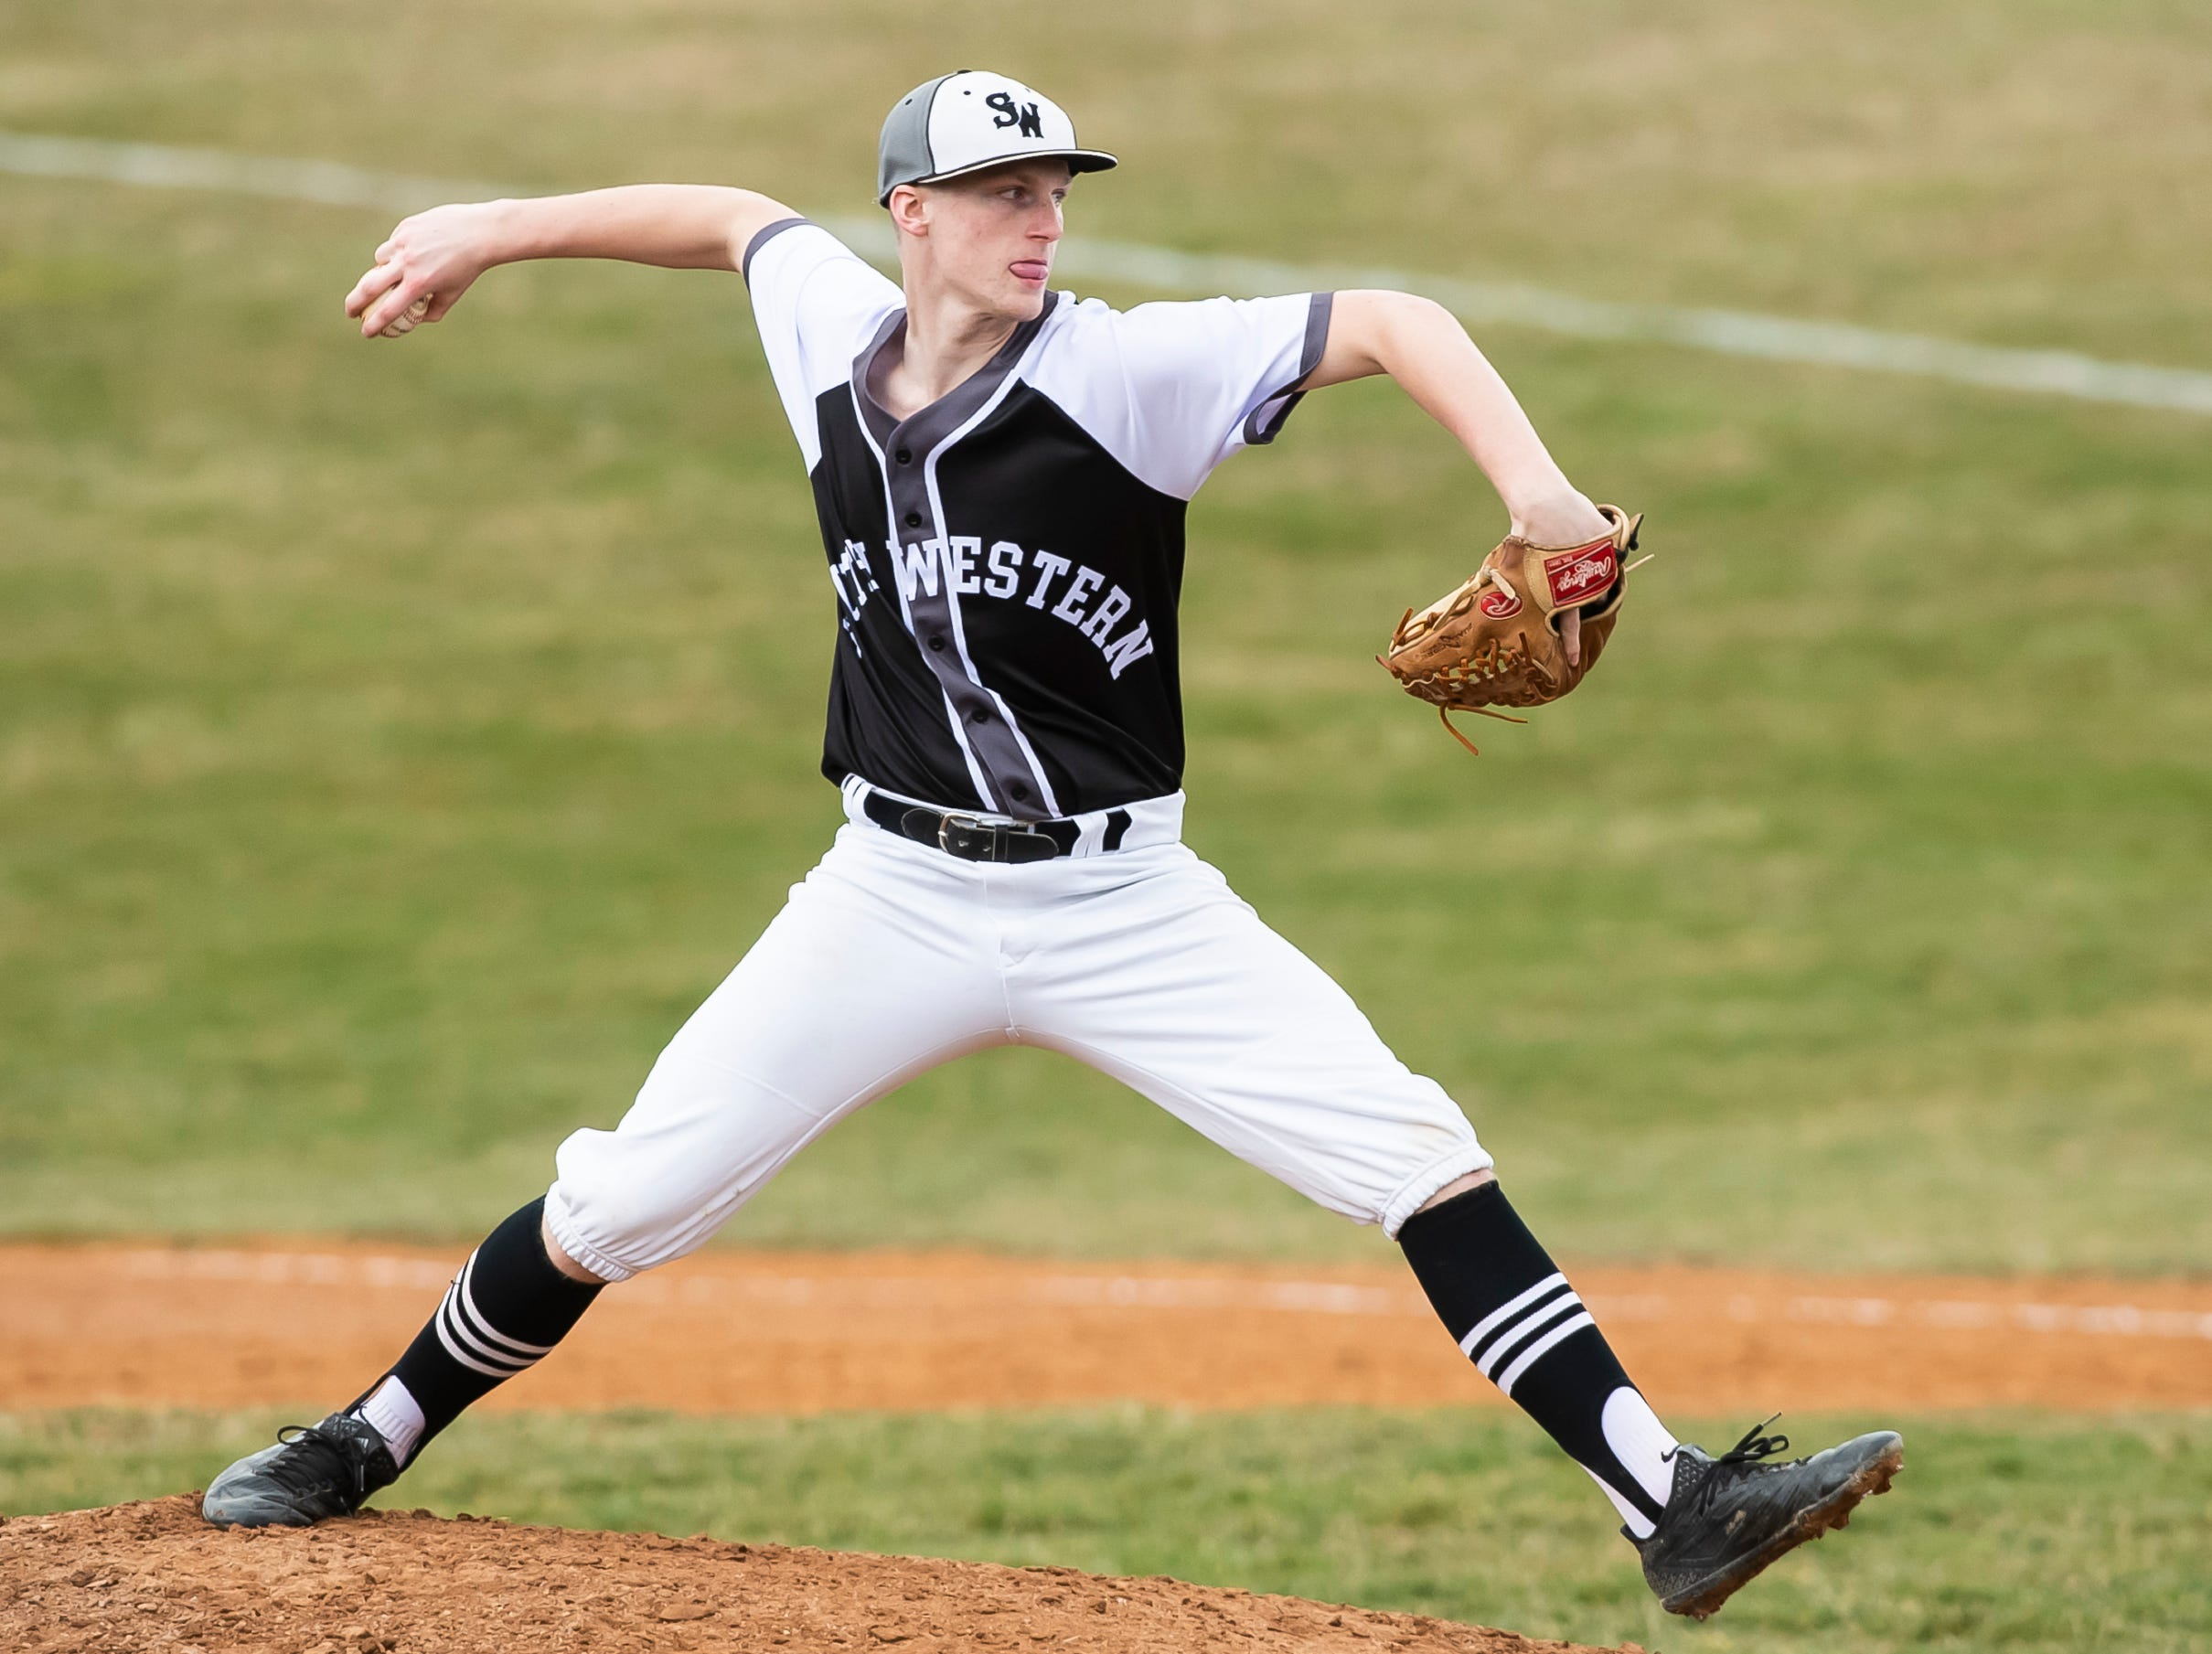 South Western's Aaron Hughes pitches against Carlisle in Hanover on Friday, March 29, 2019. The Mustangs won 11-9.